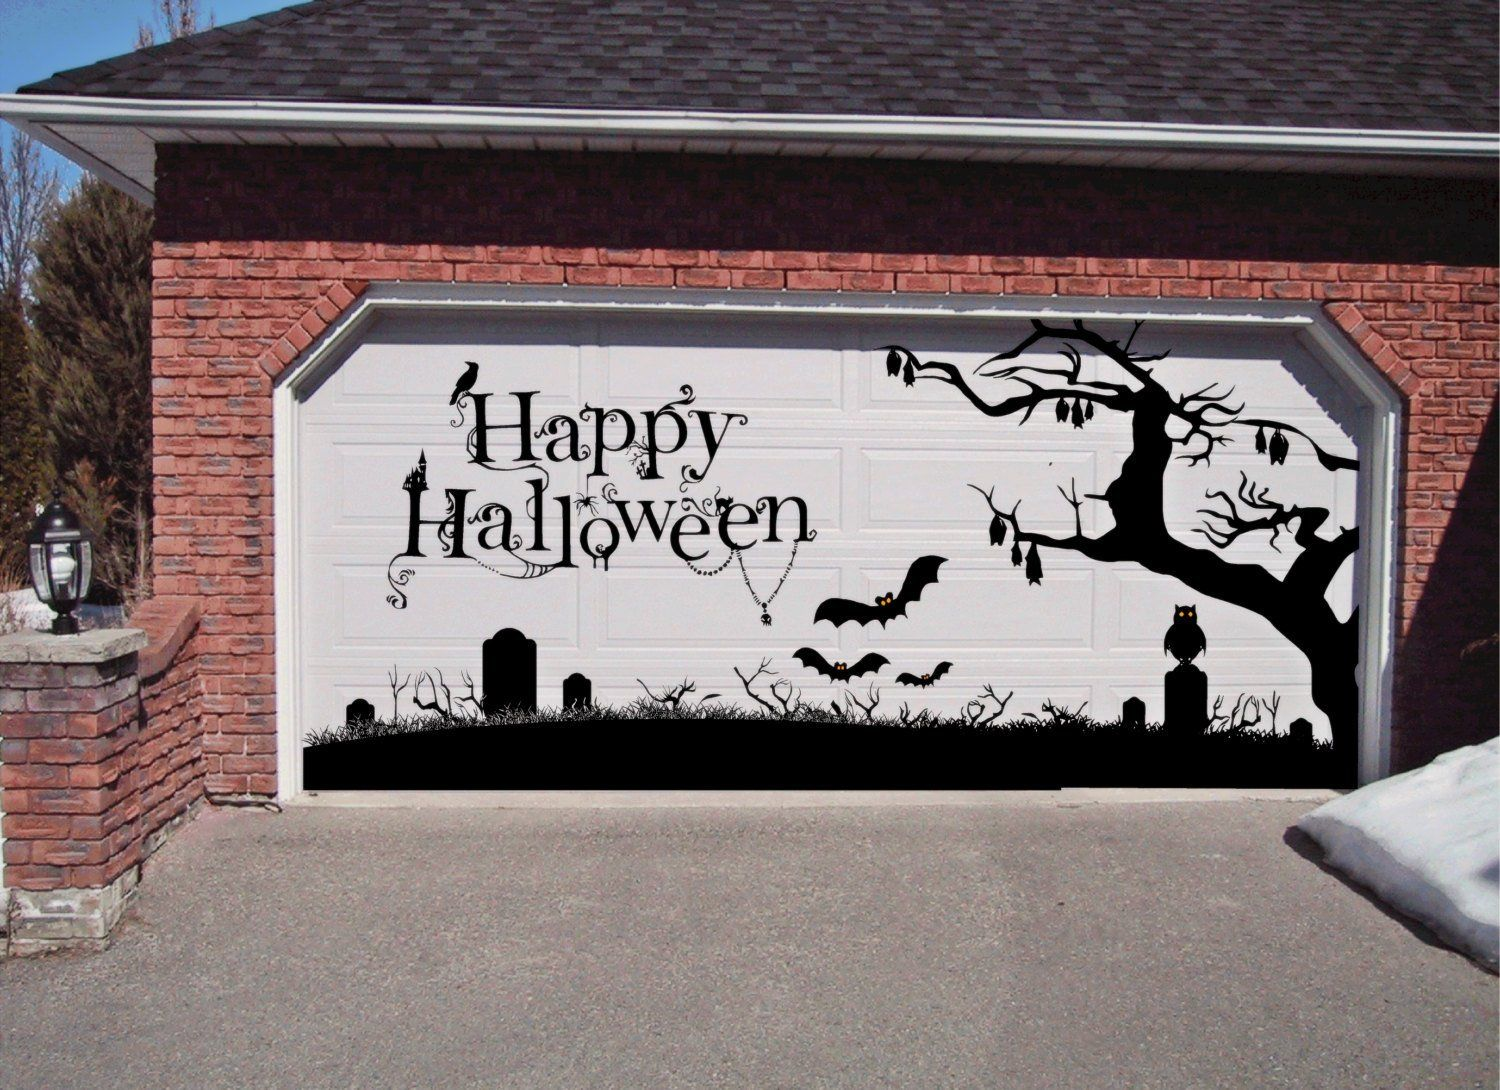 Get in the spirit with these Halloween garage door decorations that - Halloween Garage Door Decorations